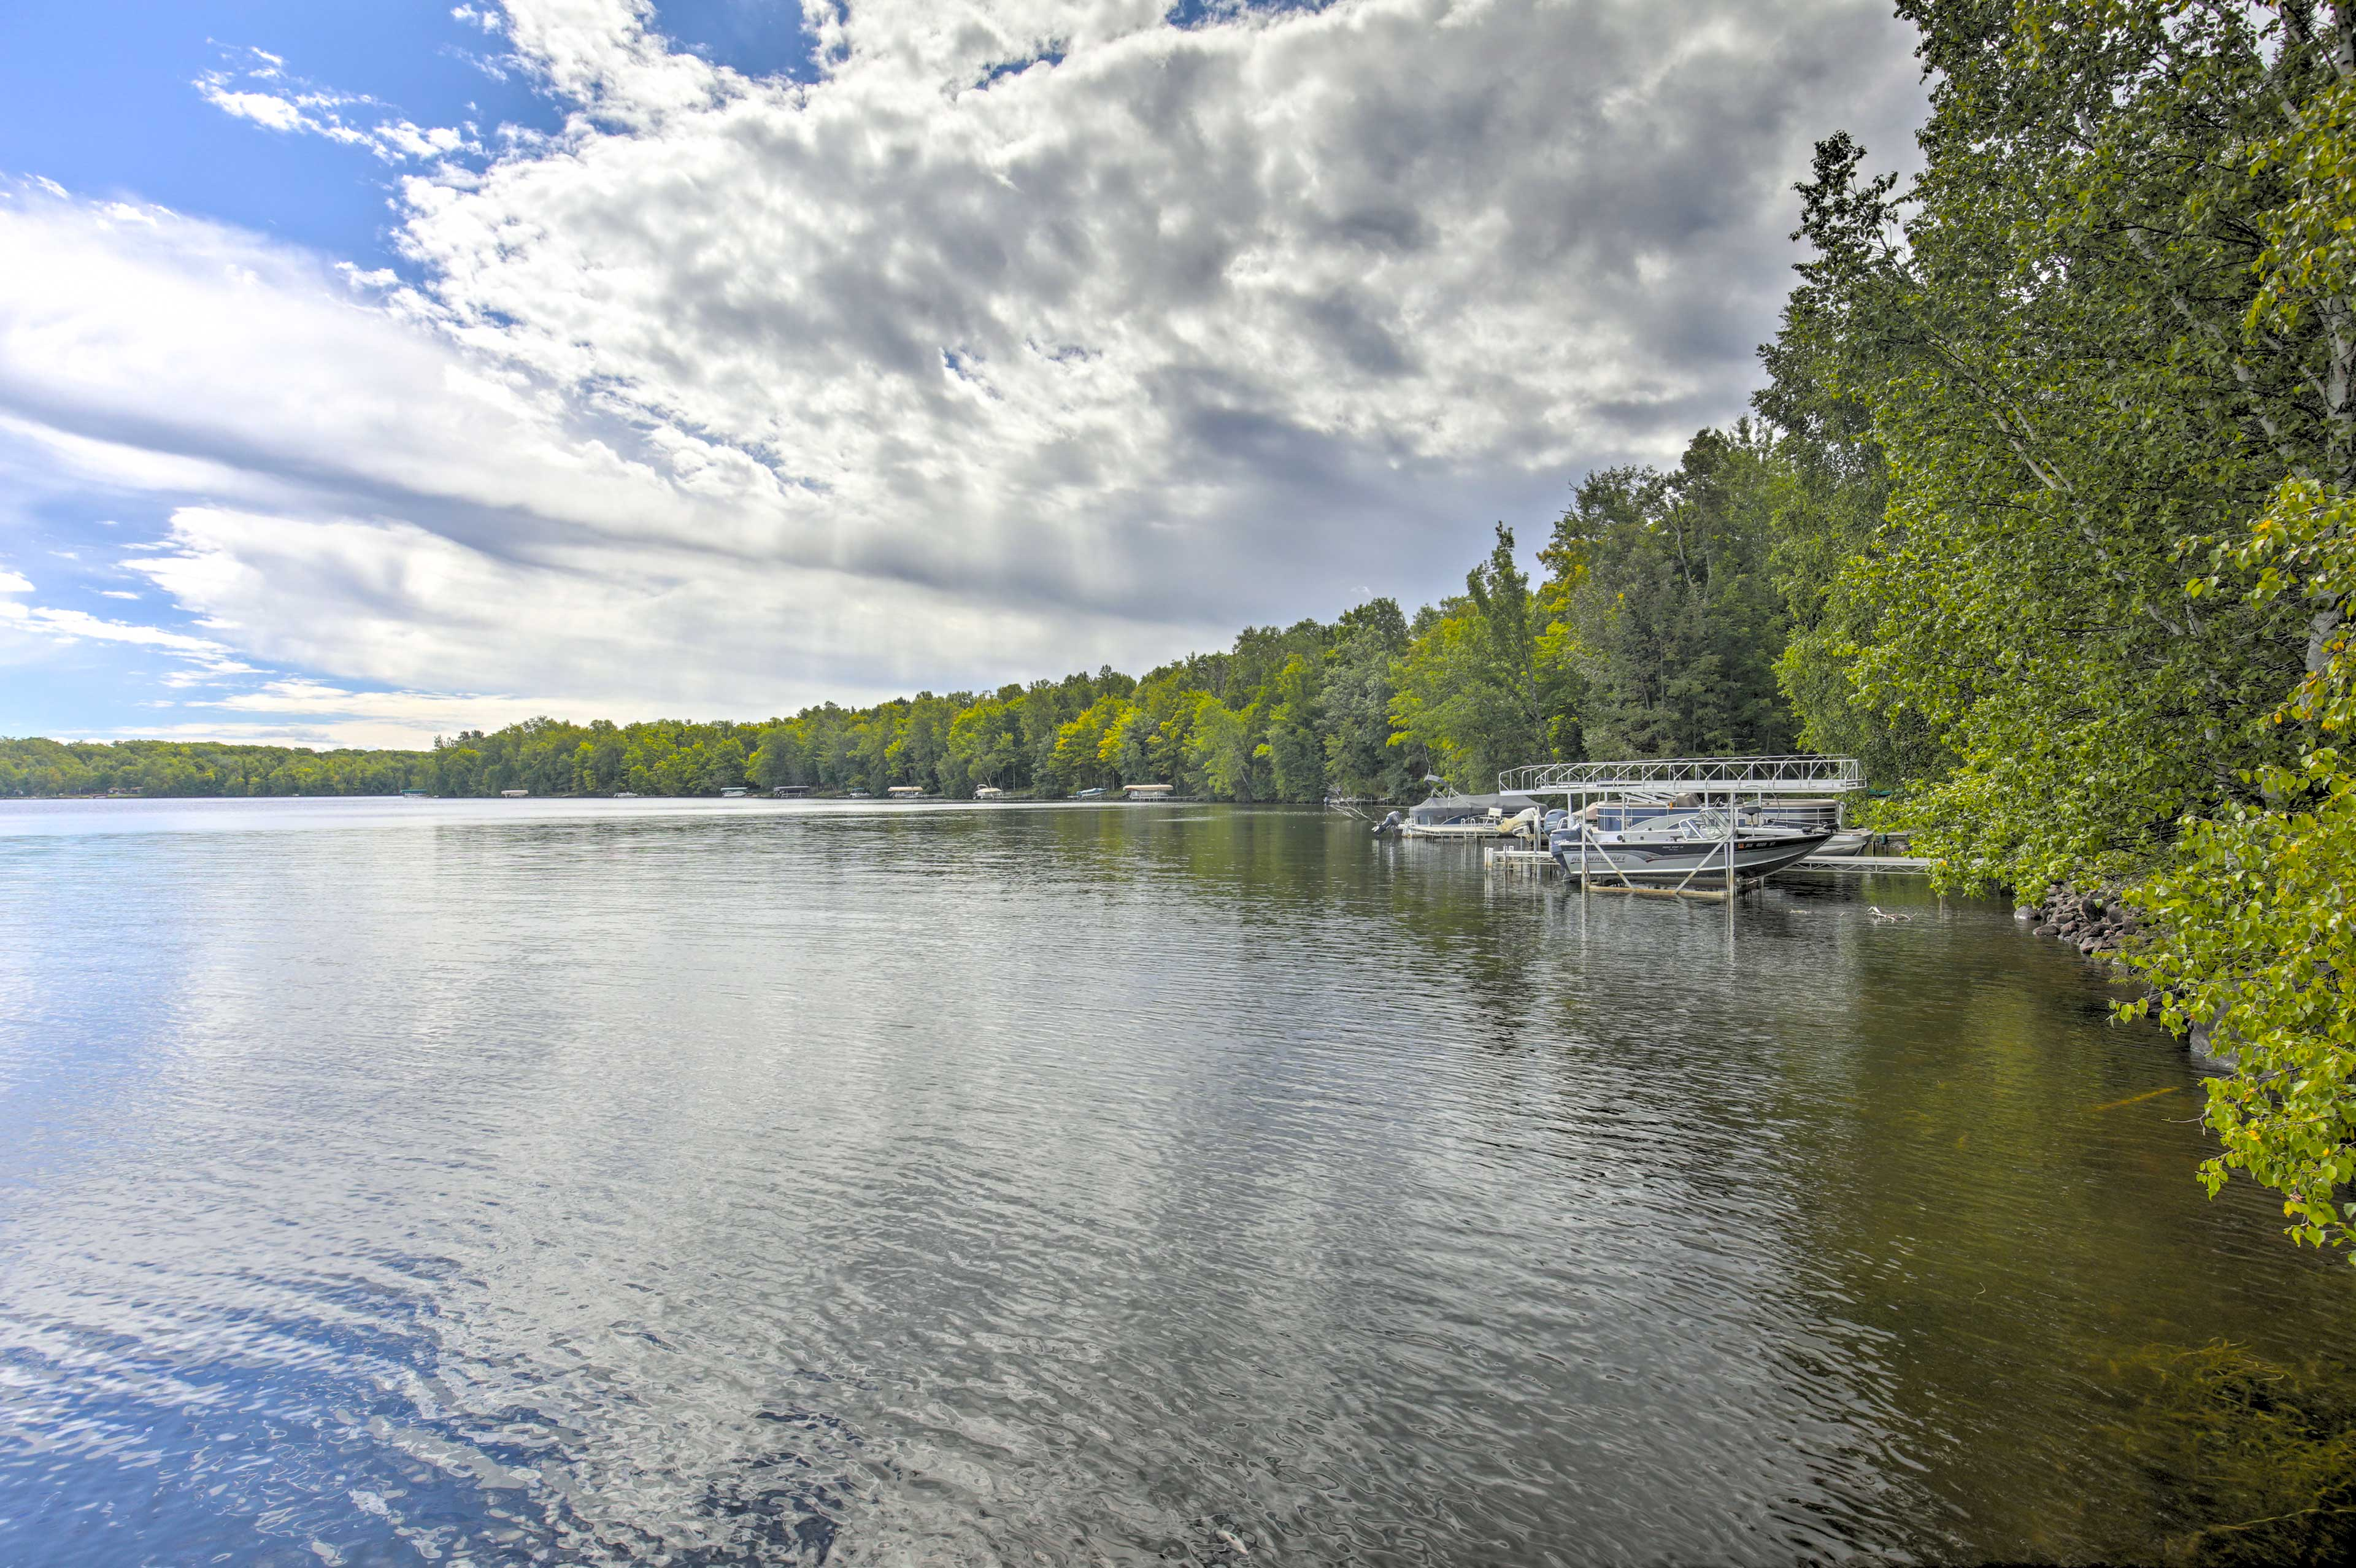 Your lakeside vacation begins at this picturesque retreat!